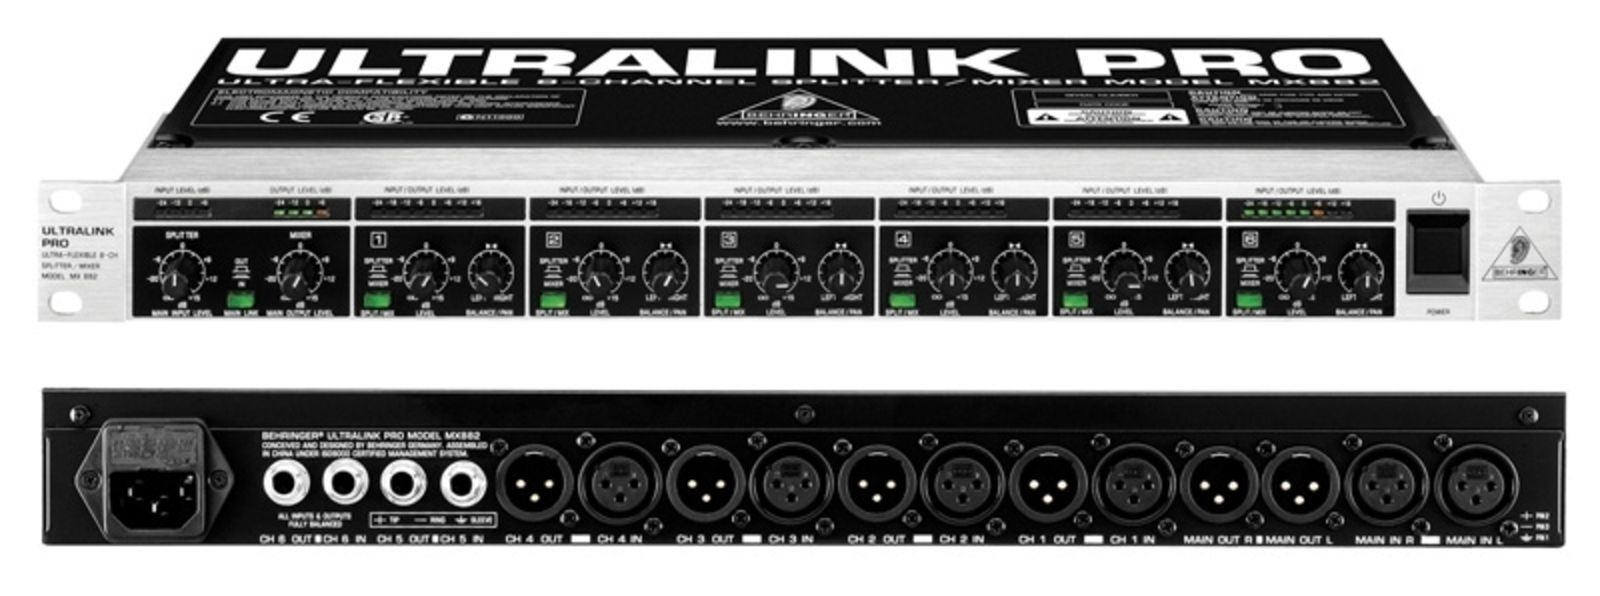 behringer ultralink pro mx882 manual